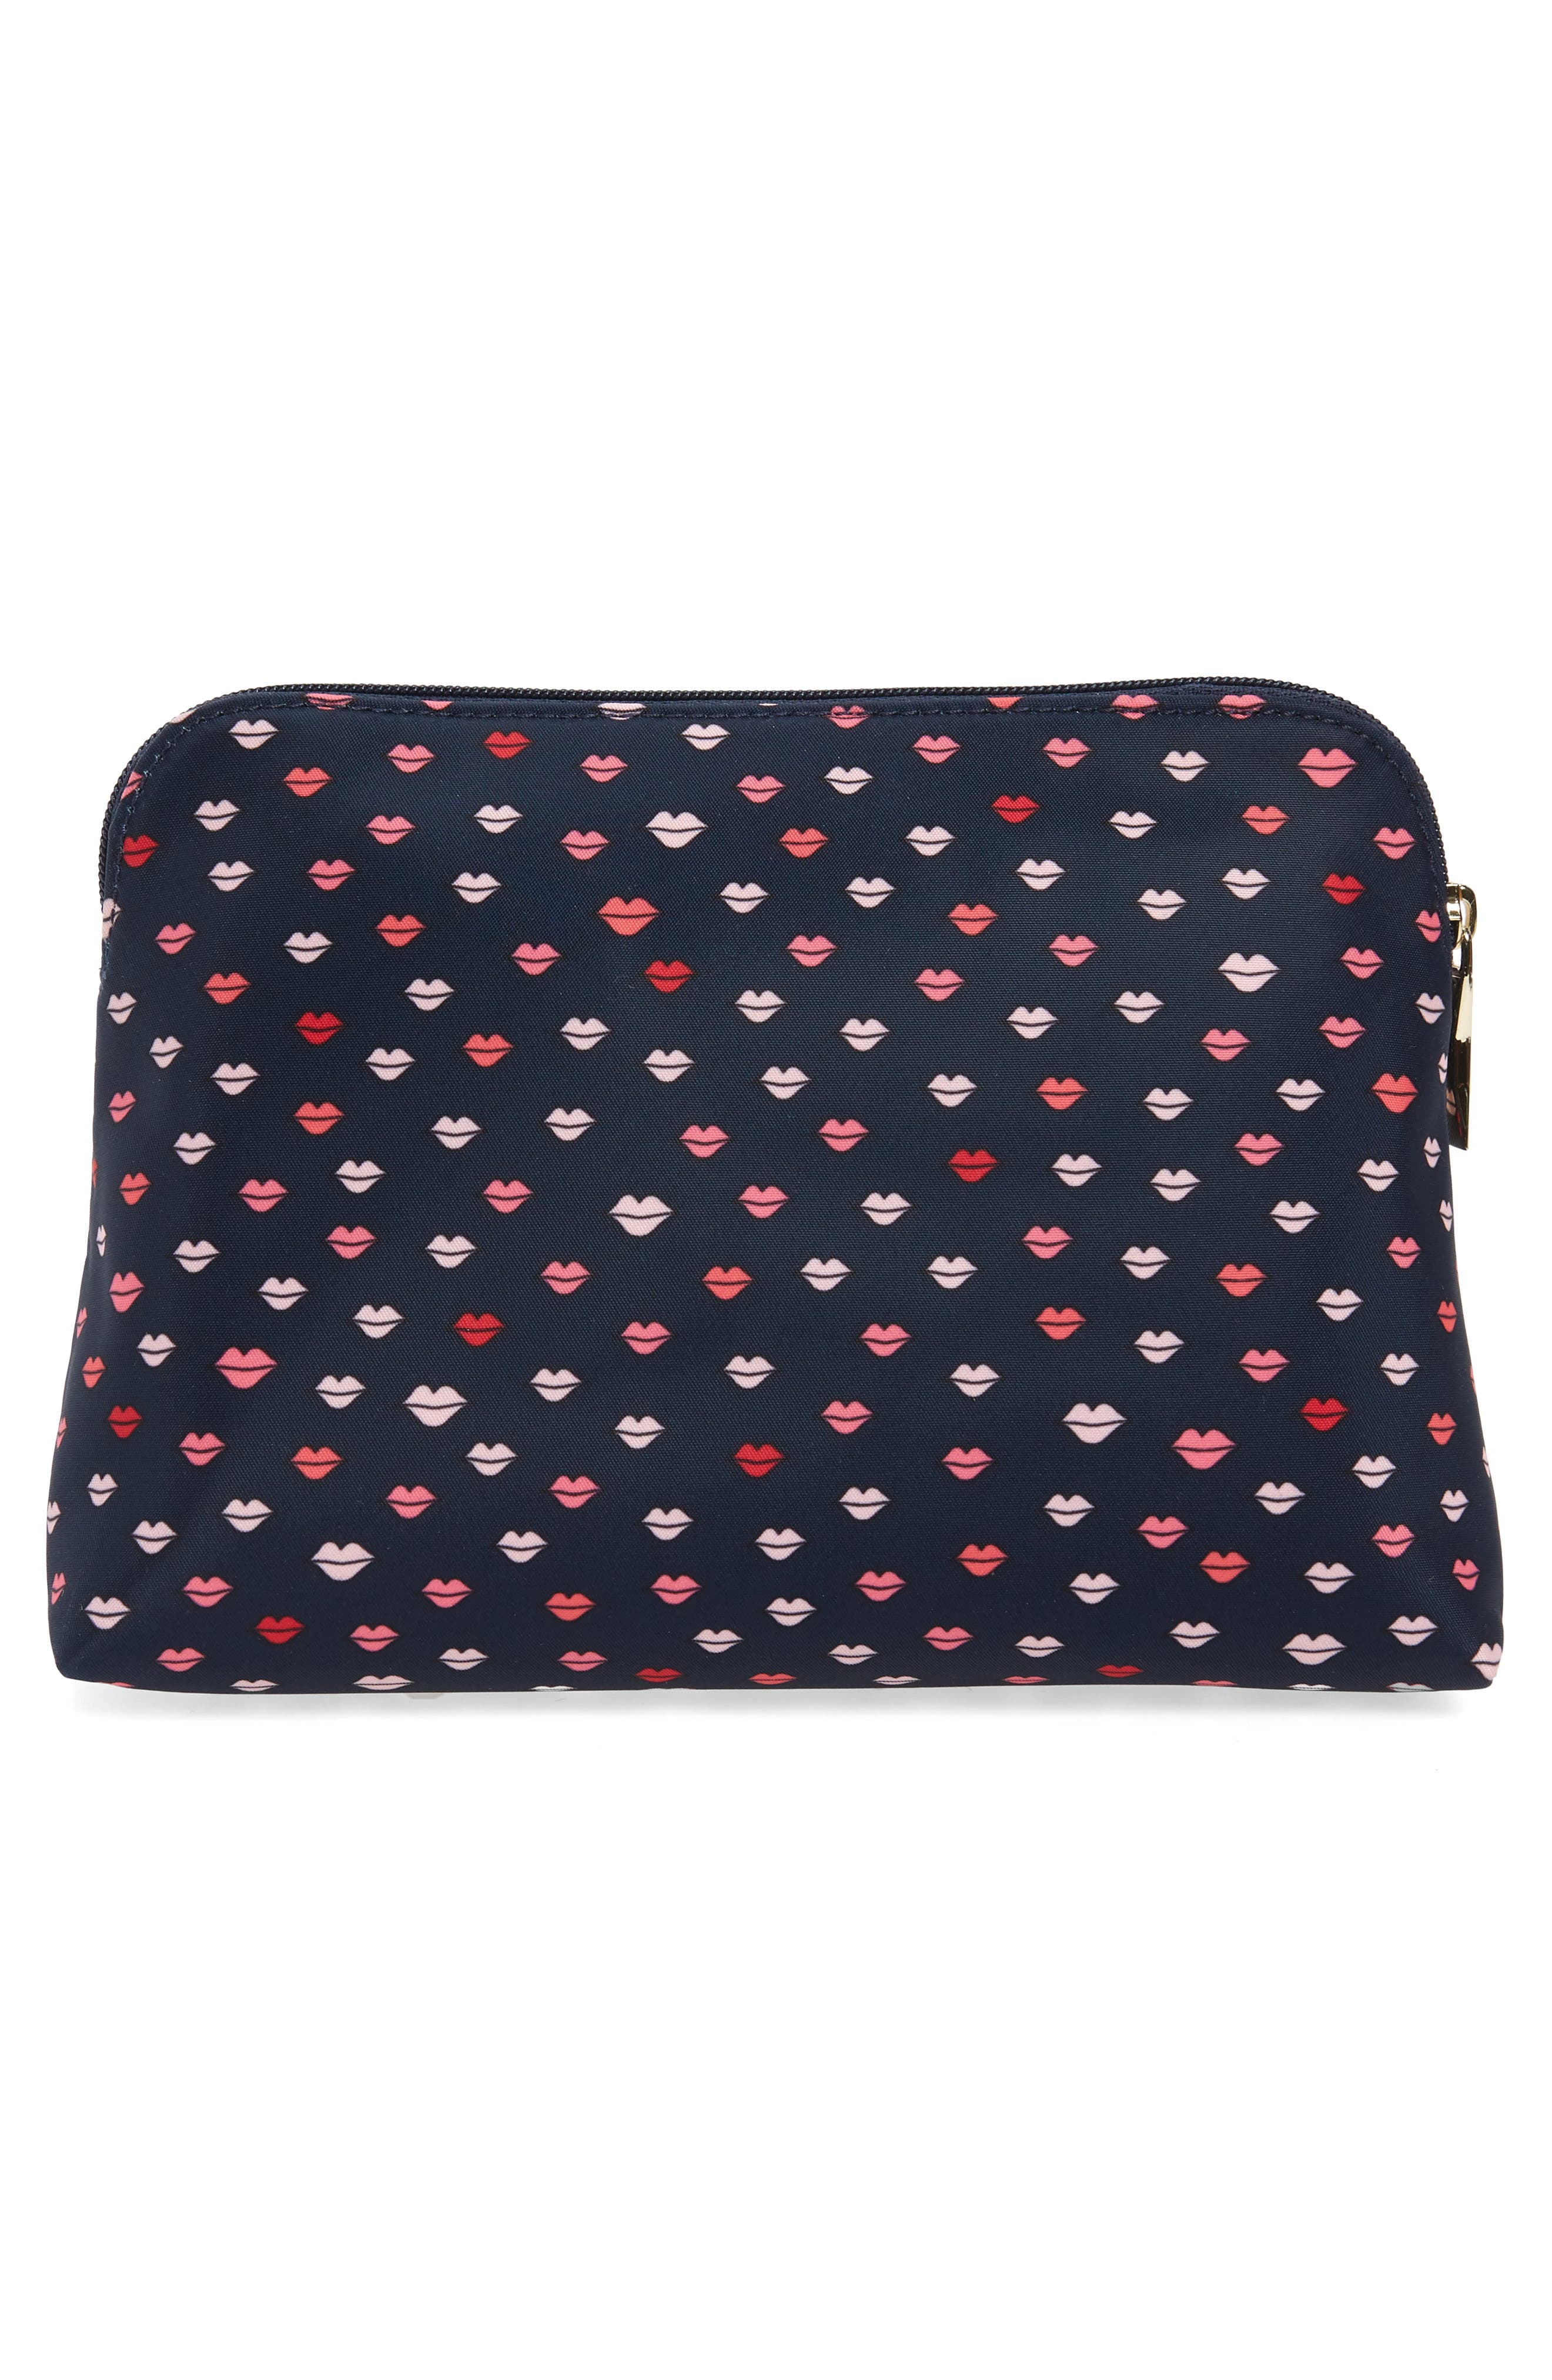 KATE SPADE NEW YORK,                             watson lane small briley cosmetic bag,                             Alternate thumbnail 2, color,                             410